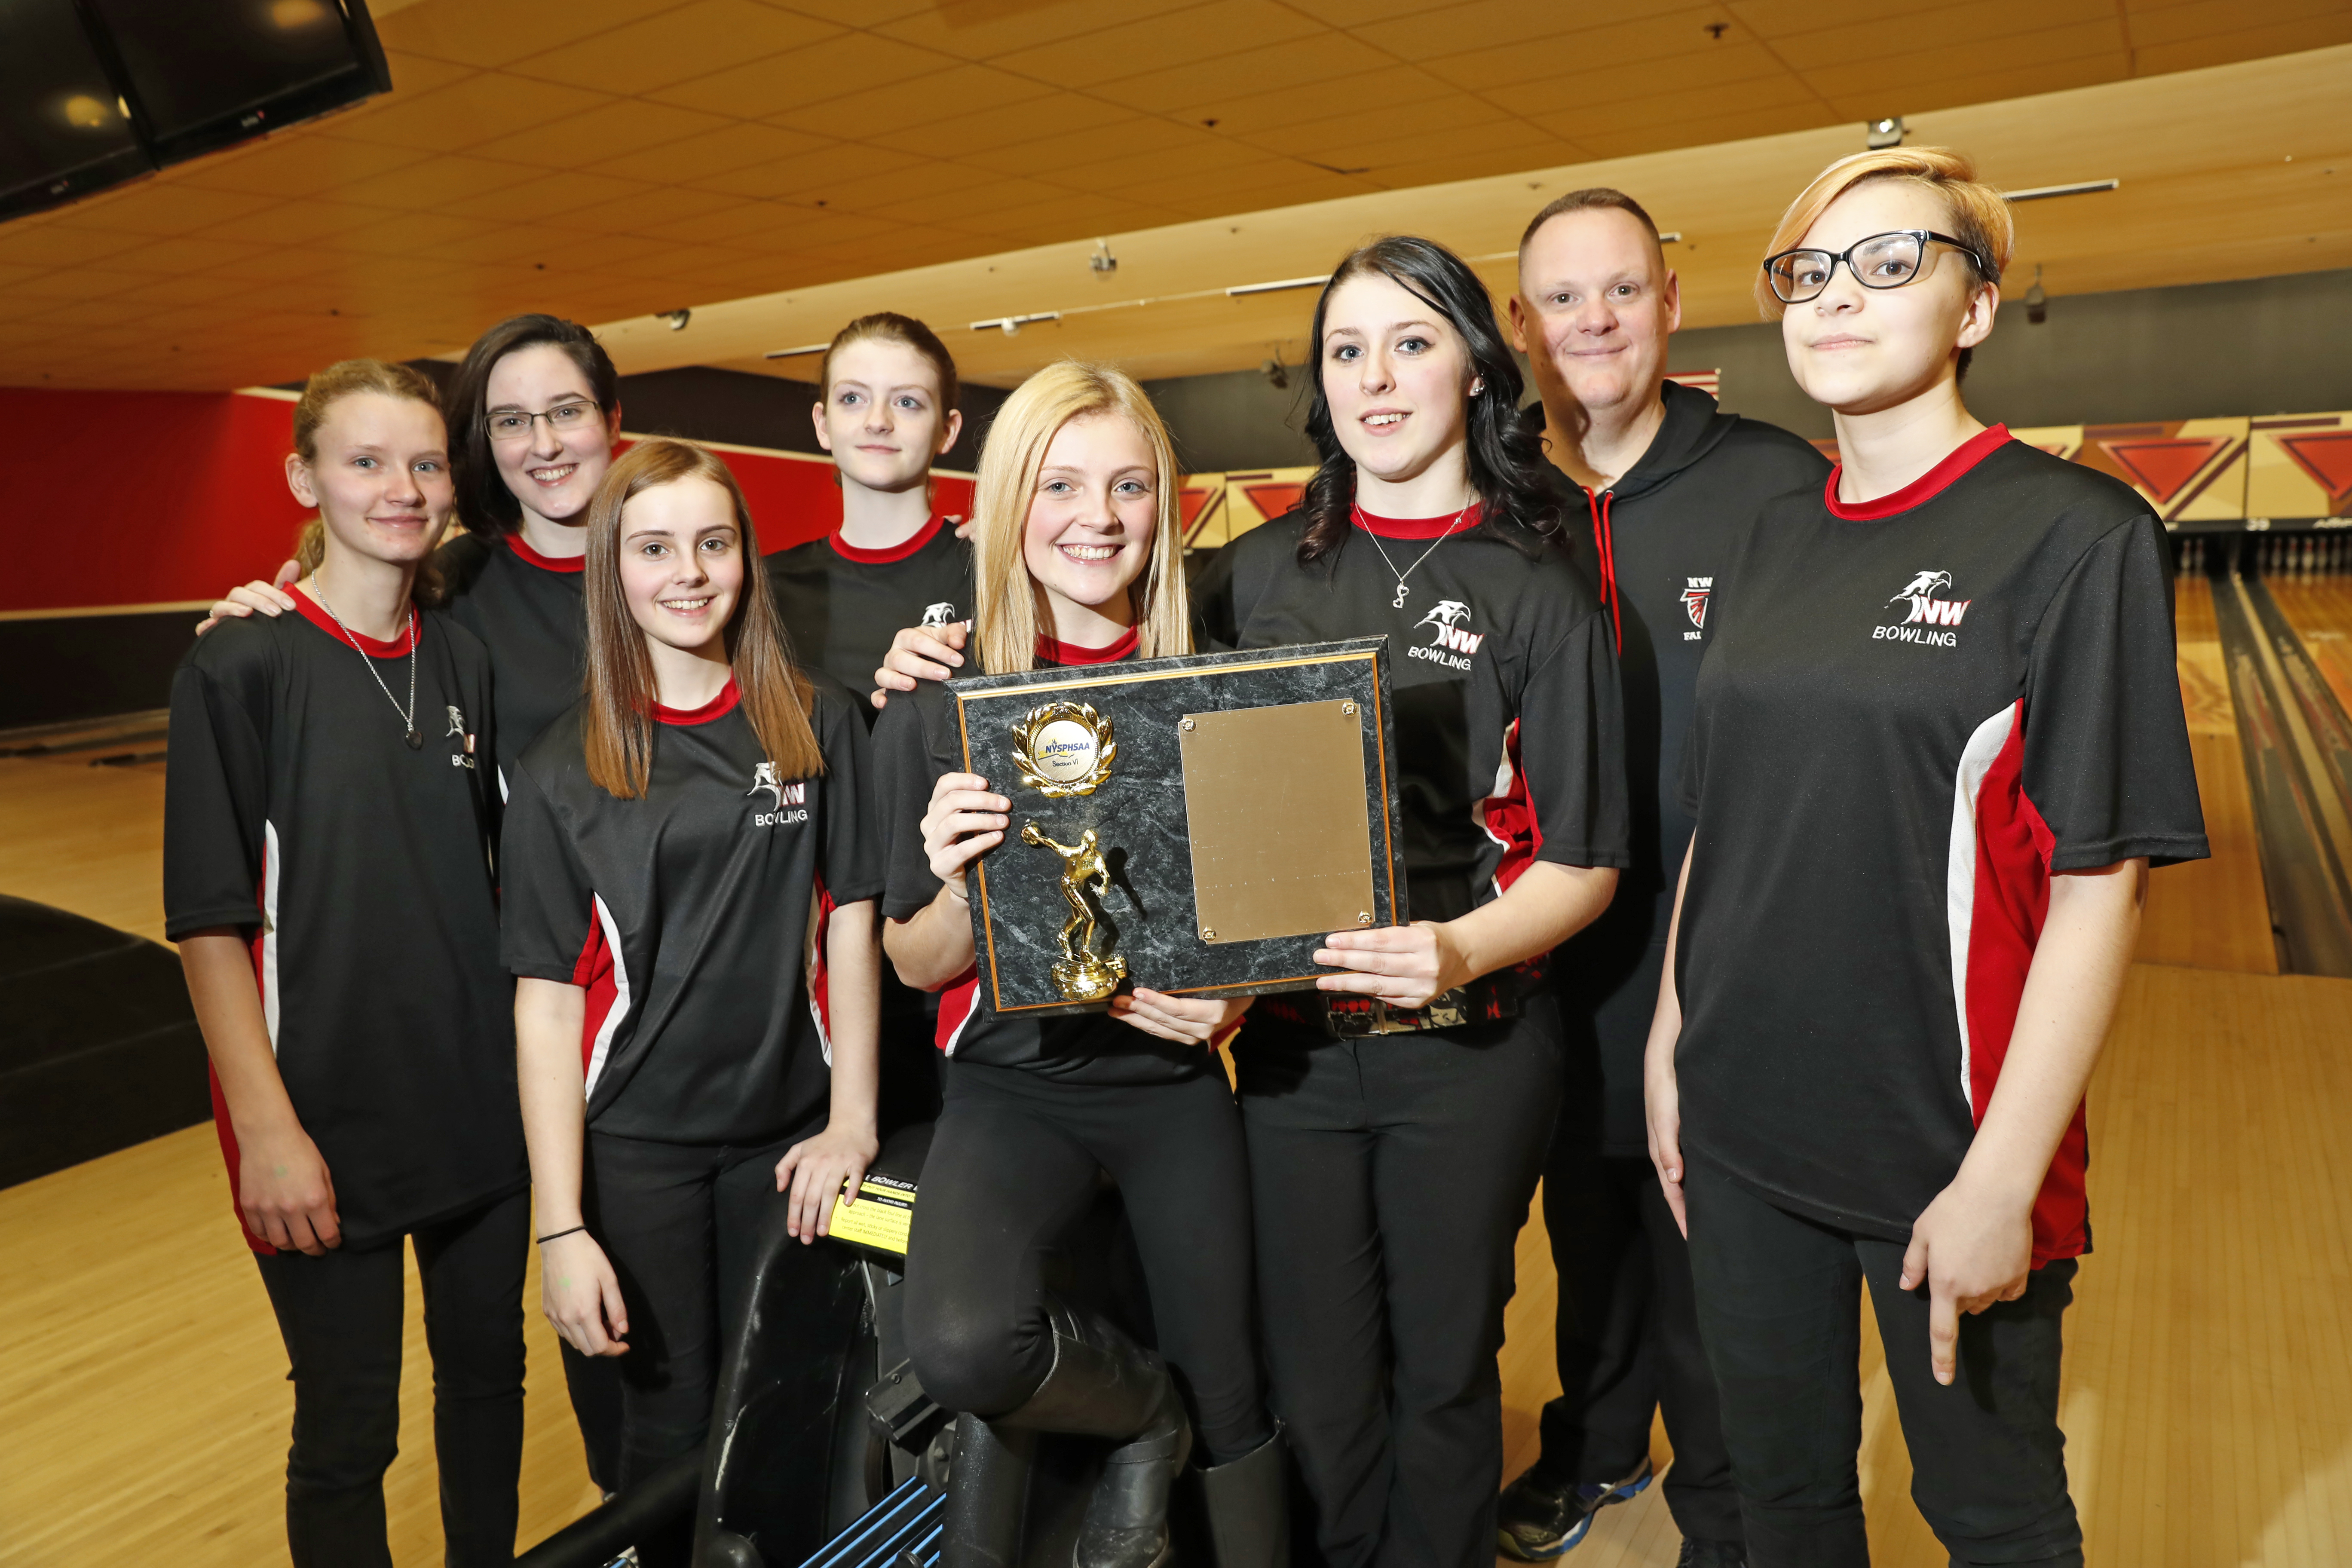 The Niagara-Wheatfield girls bowling team shows off some hard-earned hardware at the Section VI bowling championships on Wednesday in Cheektowaga. (Harry Scull Jr. / Buffalo News)